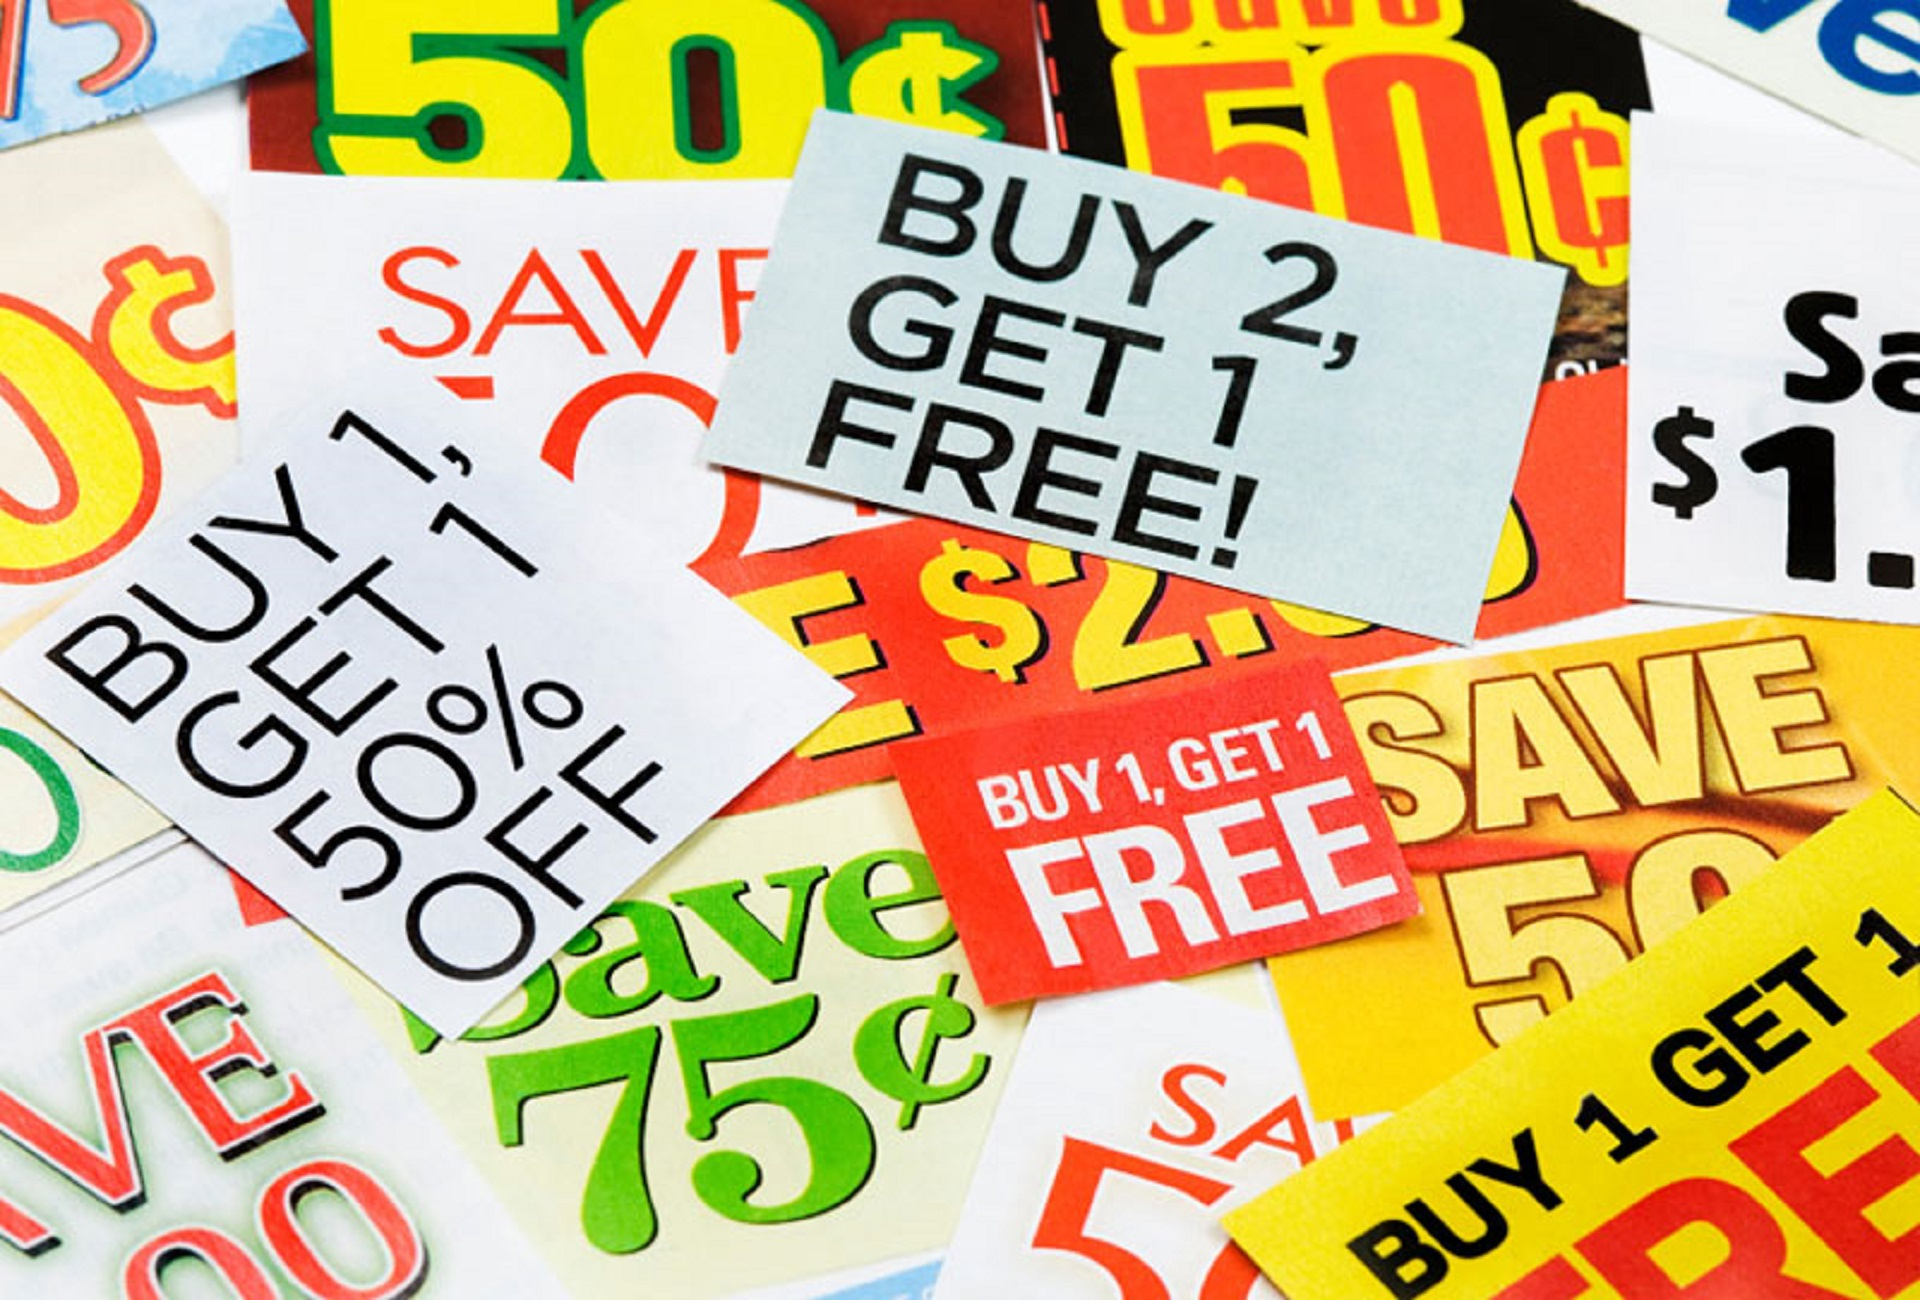 Retailers coupons rebates and online discounts are types of